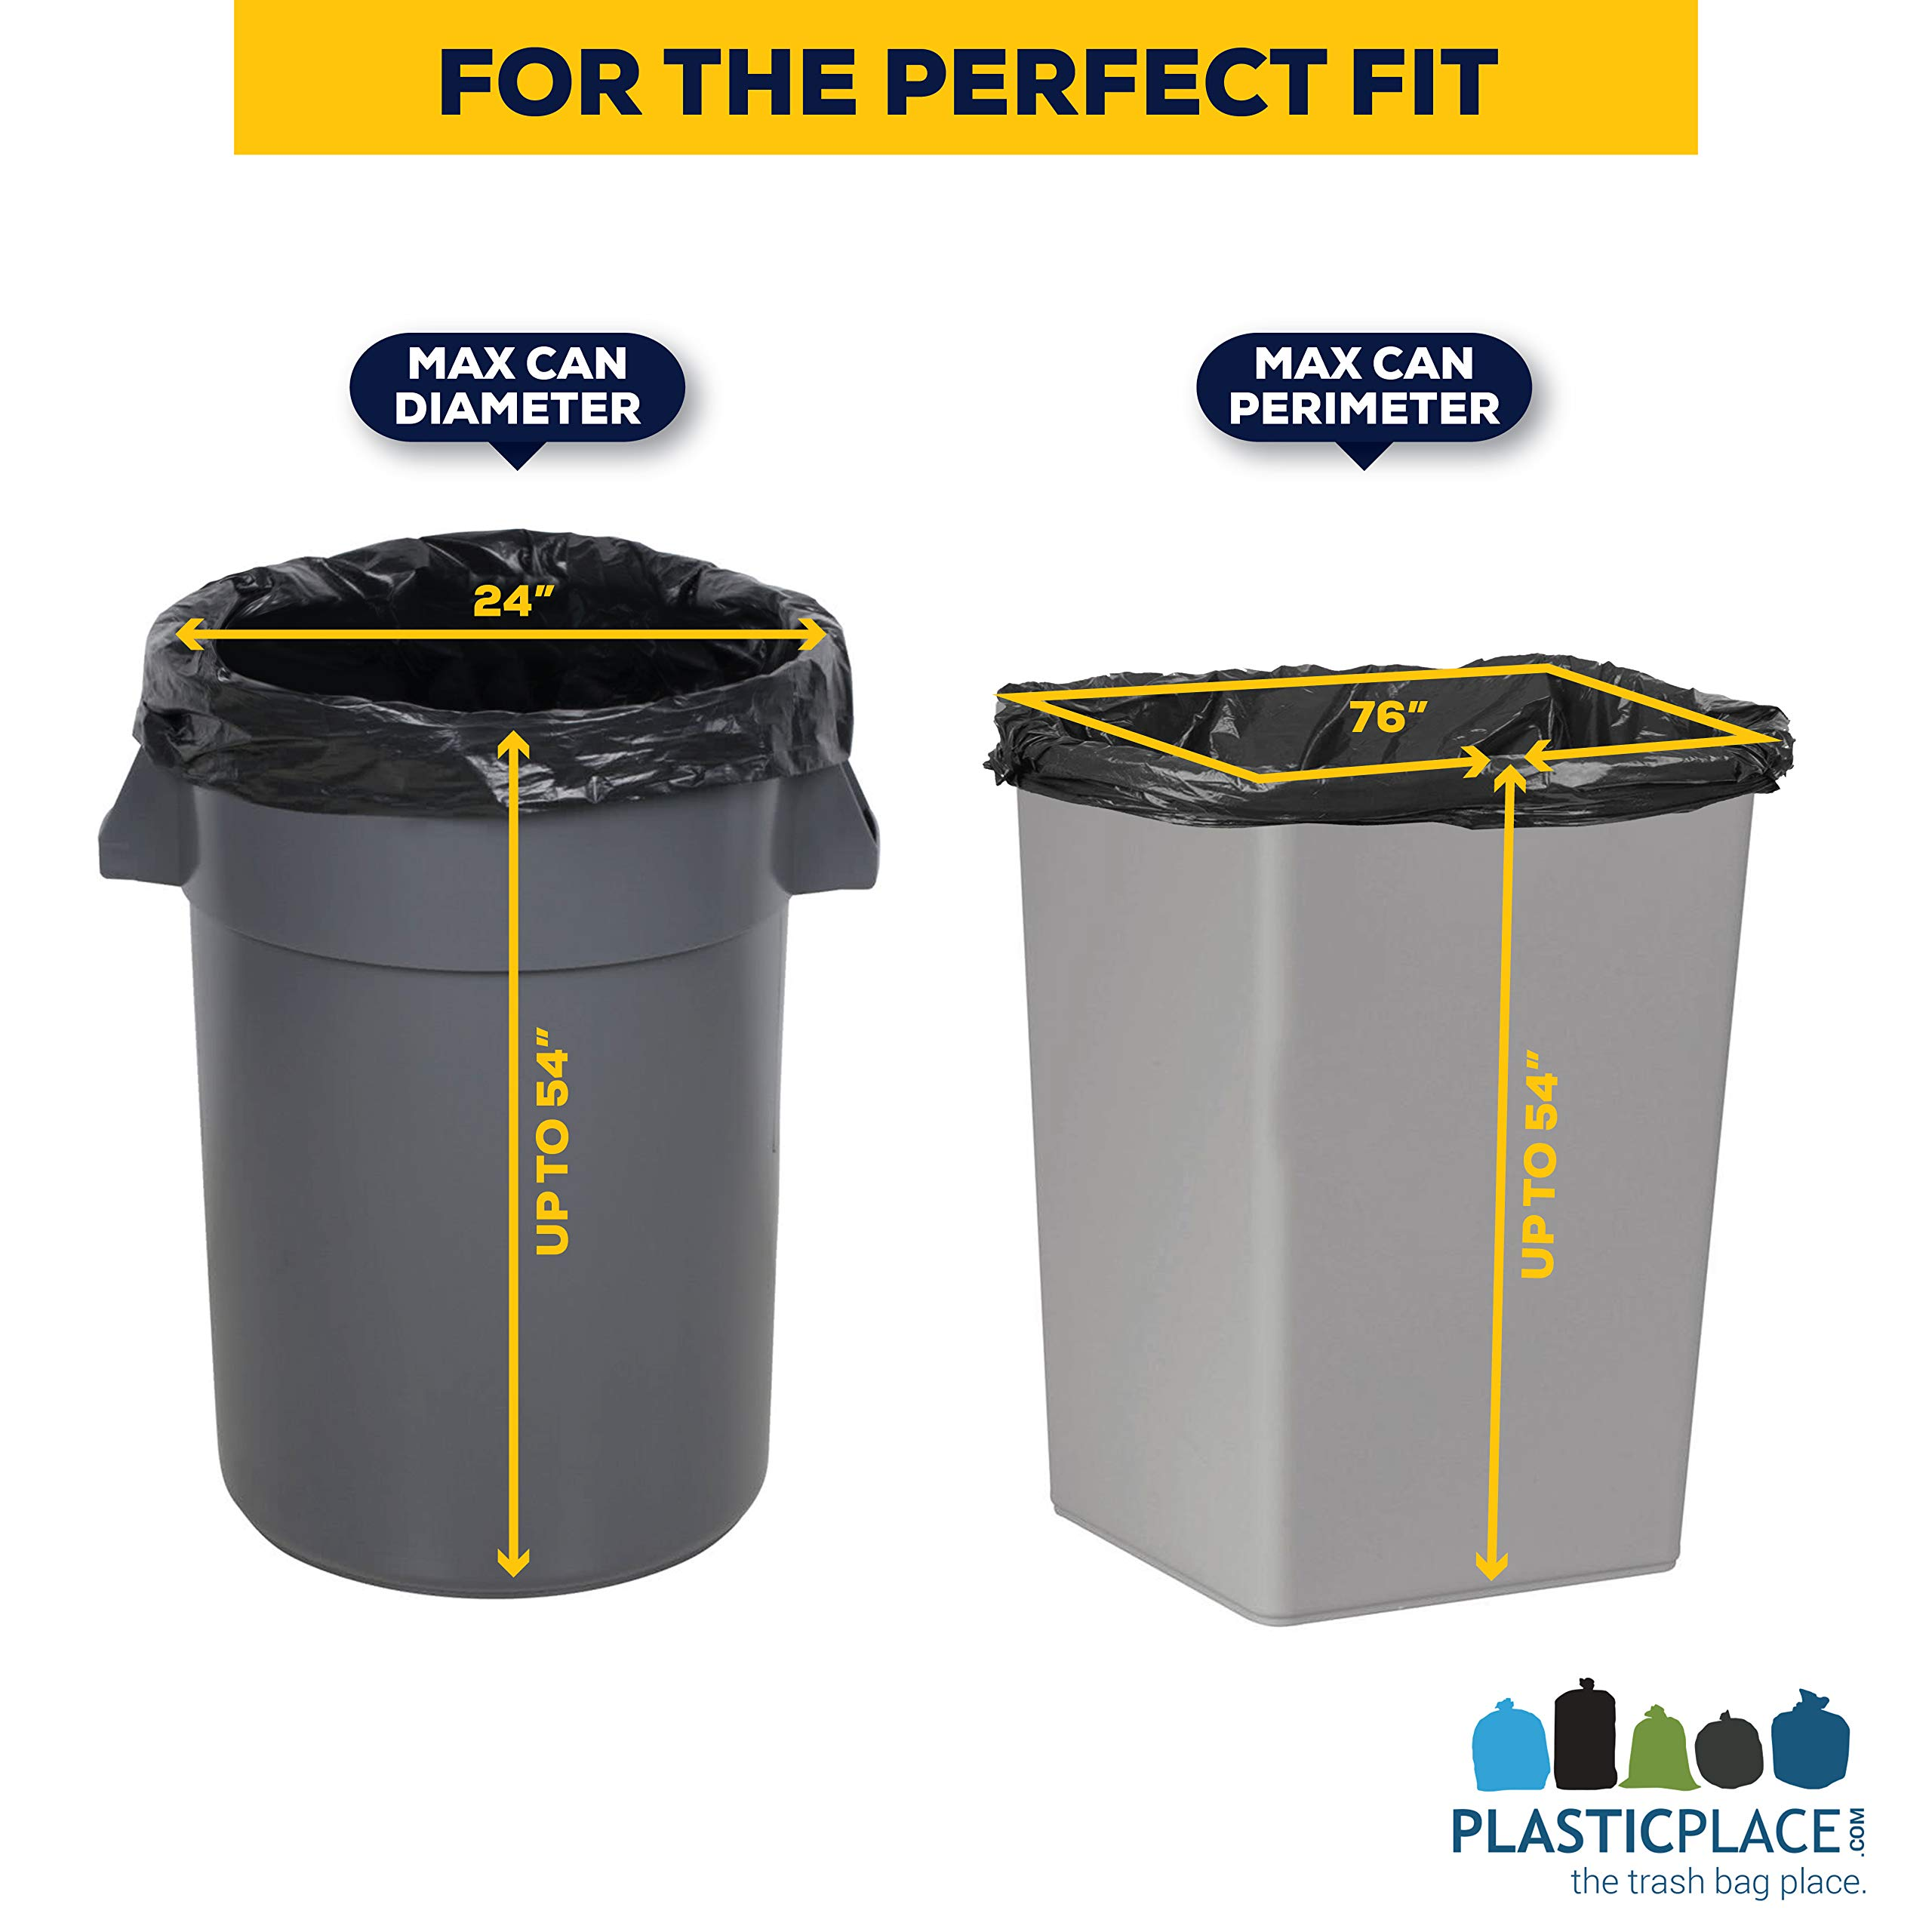 Plasticplace Contractor Trash Bags 55-60 Gallon │ 3.0 Mil │ Black Heavy Duty Garbage Bag │ 38'' x 58'' (50 Count) by Plasticplace (Image #4)